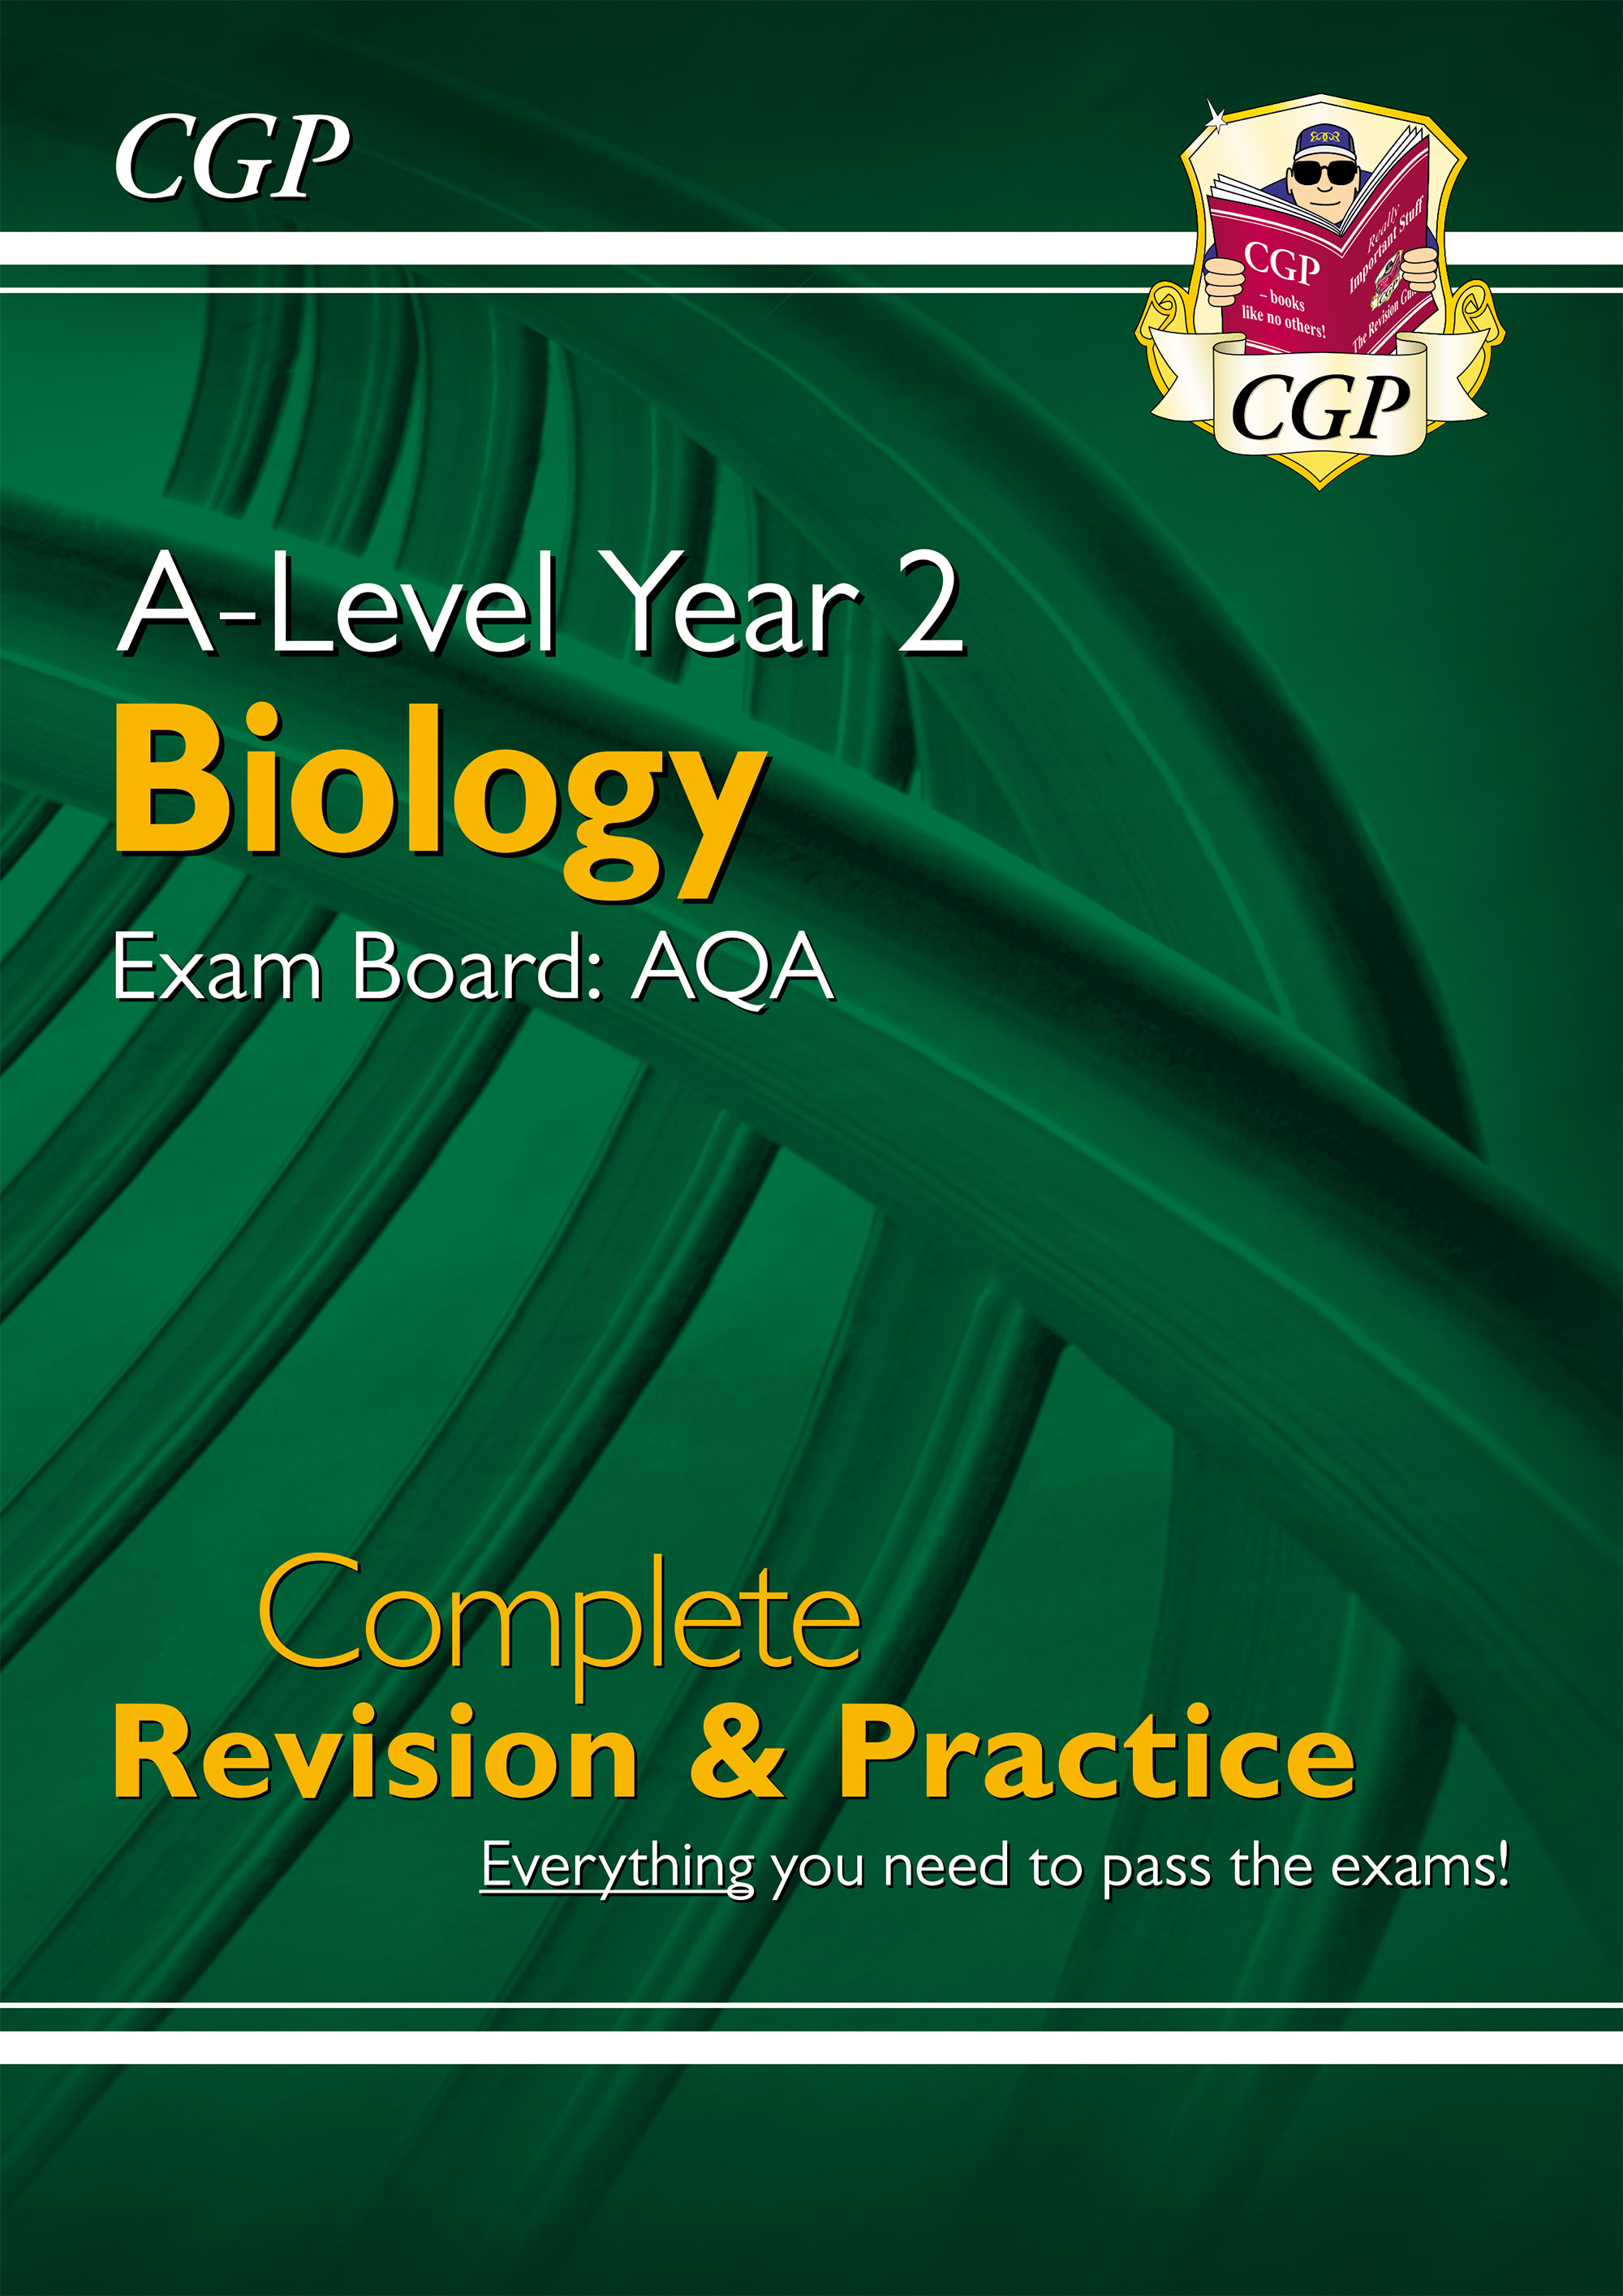 BAR63DK - New A-Level Biology for 2018: AQA Year 2 Complete Revision & Practice